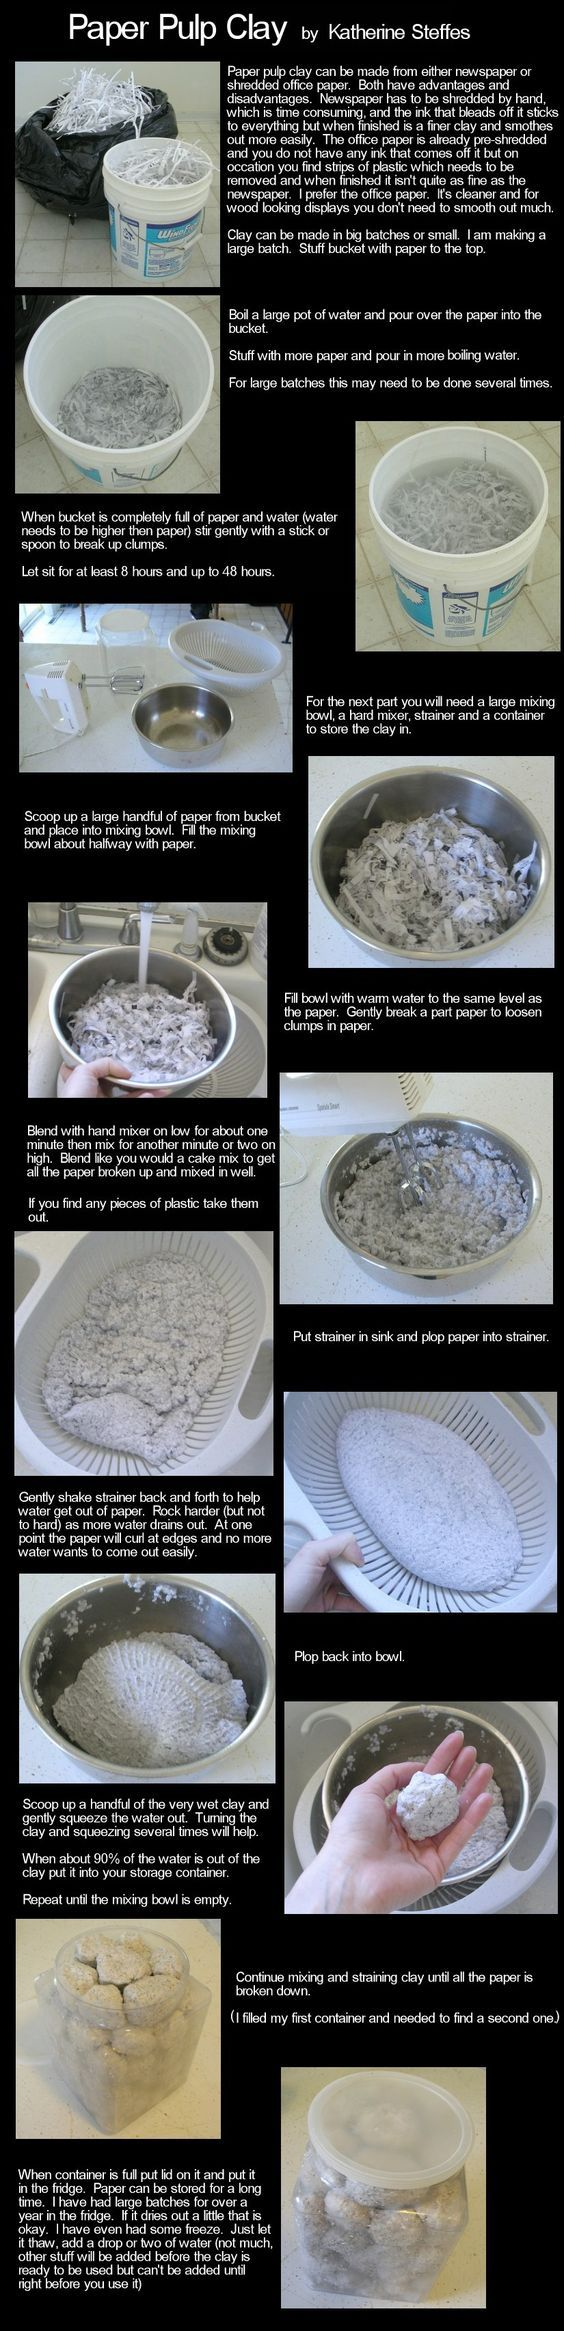 Paper Mache Recipe | proptology recipes ronnie burkett s papier mache recipes…